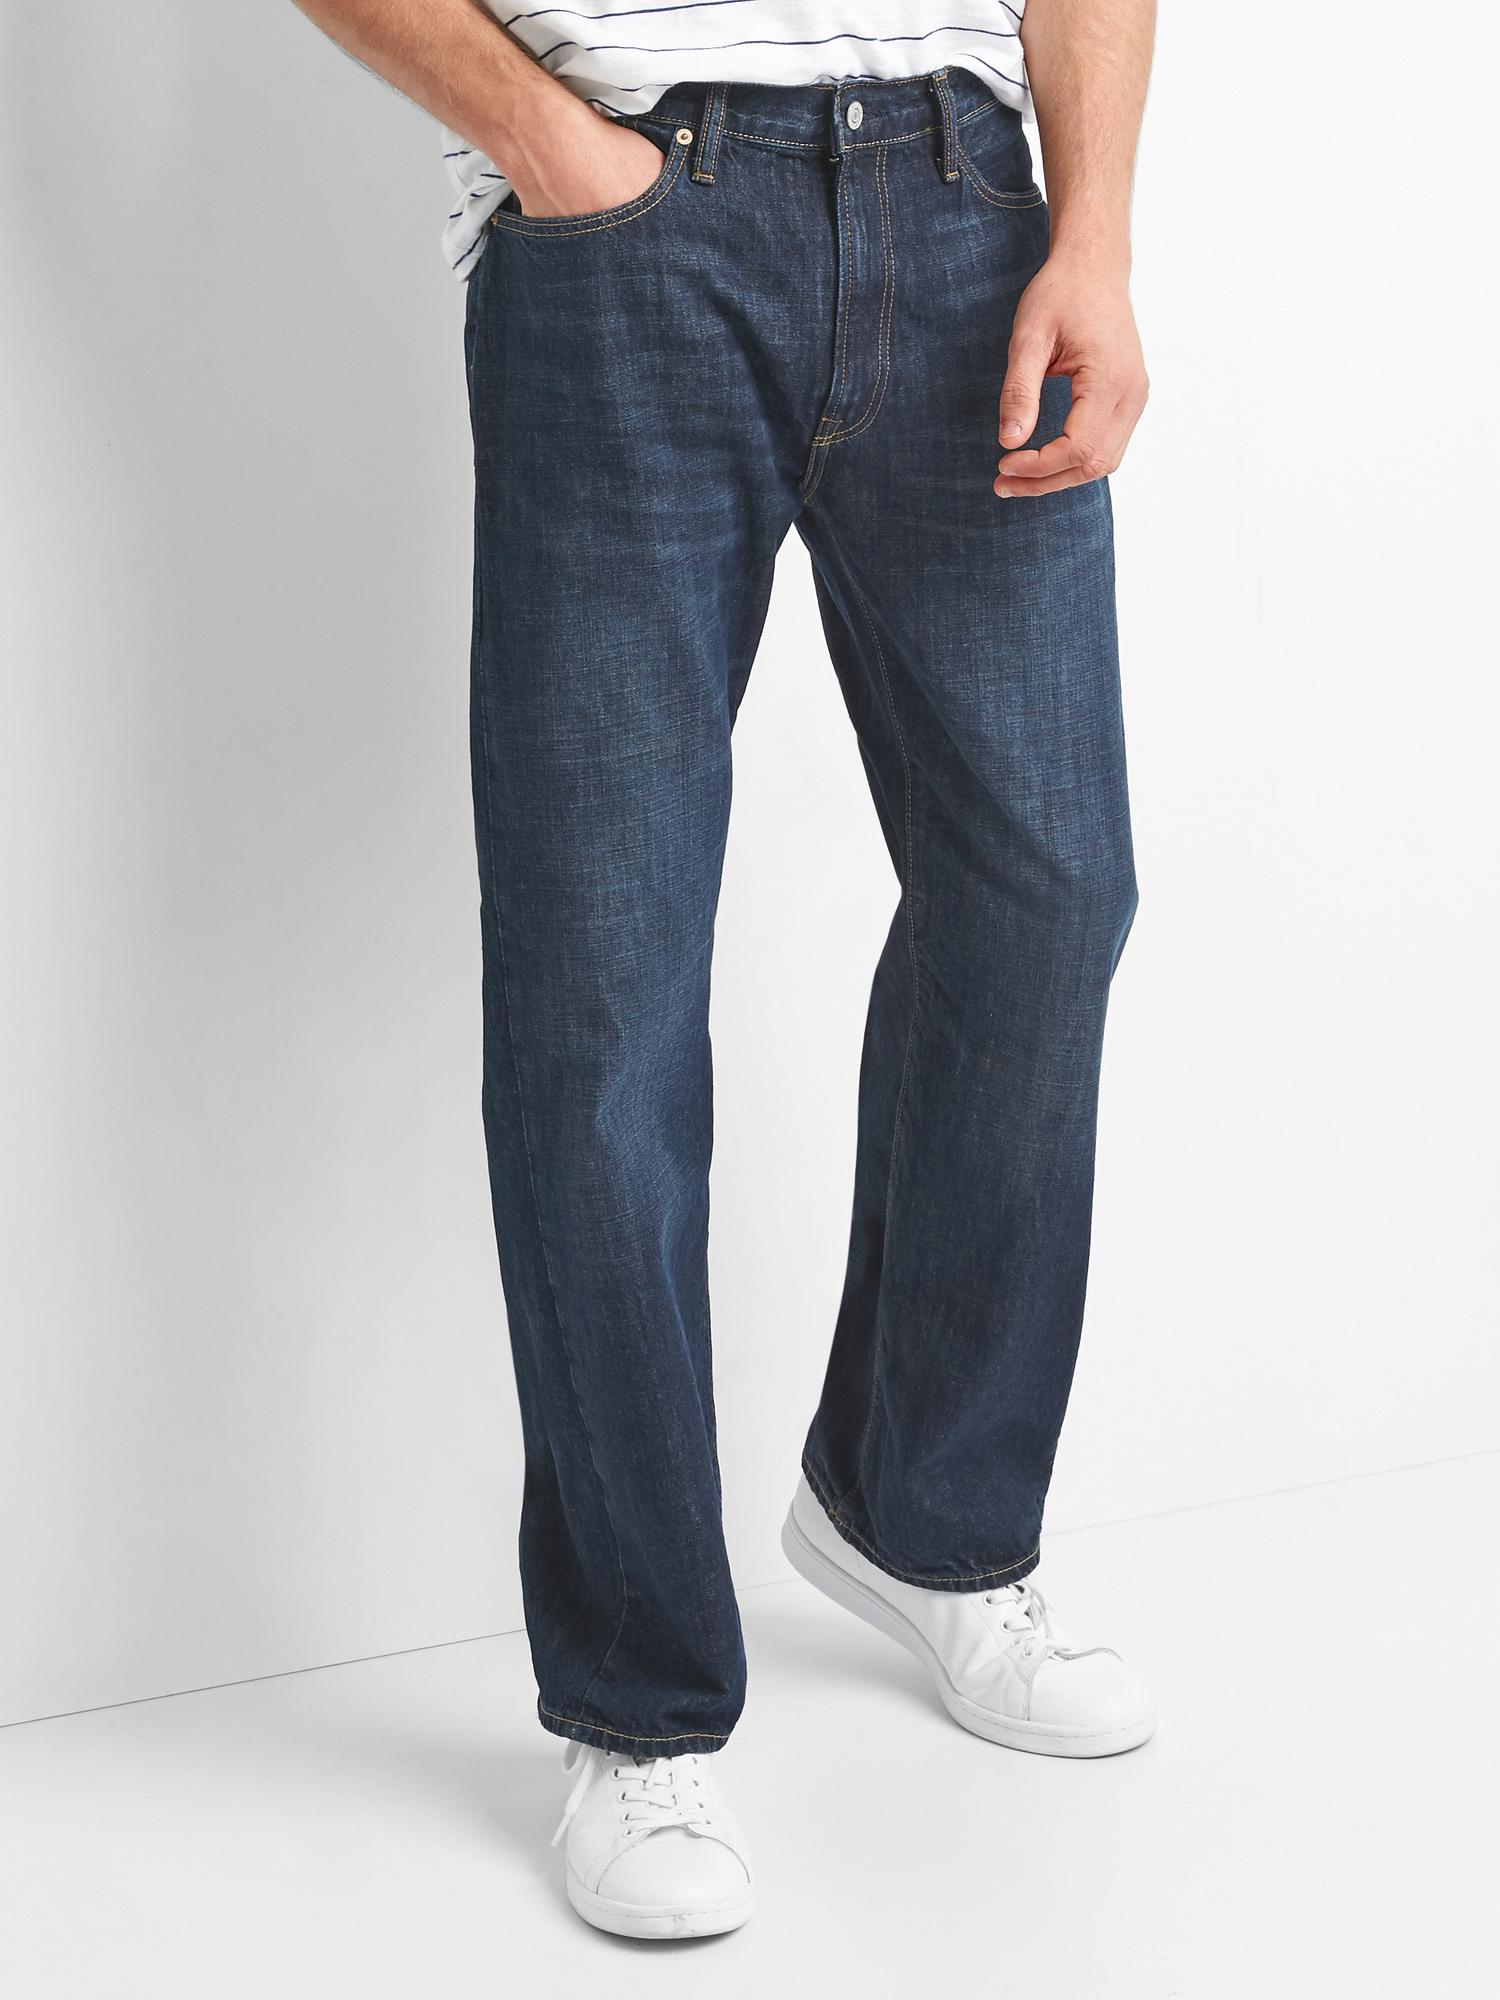 aec5074e4991 Relaxed Jeans